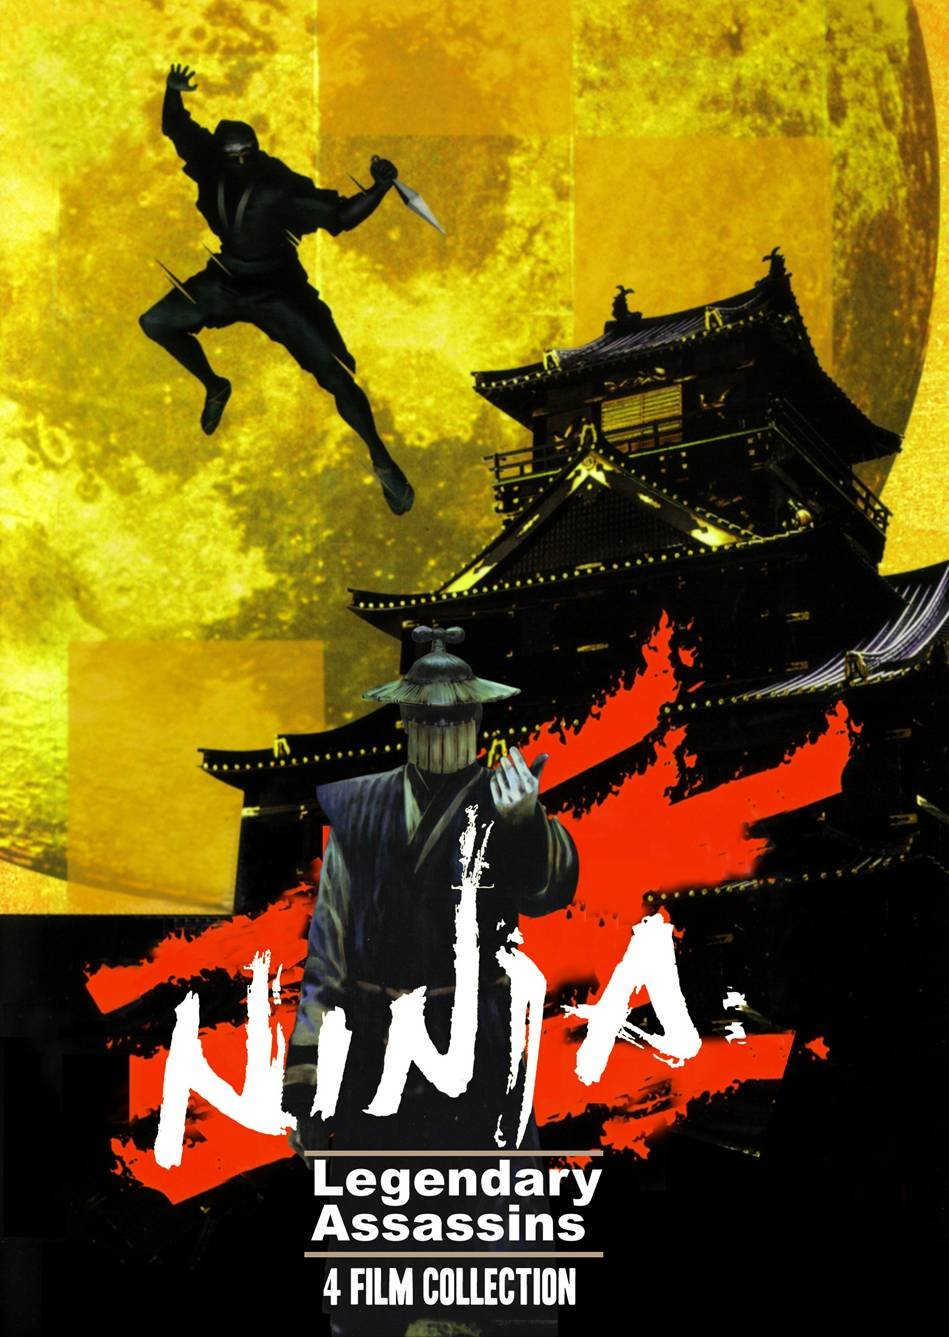 Amazon.com: Ninja Assassins: 4 Film Set: Conan Lee, Hiroyuki ...